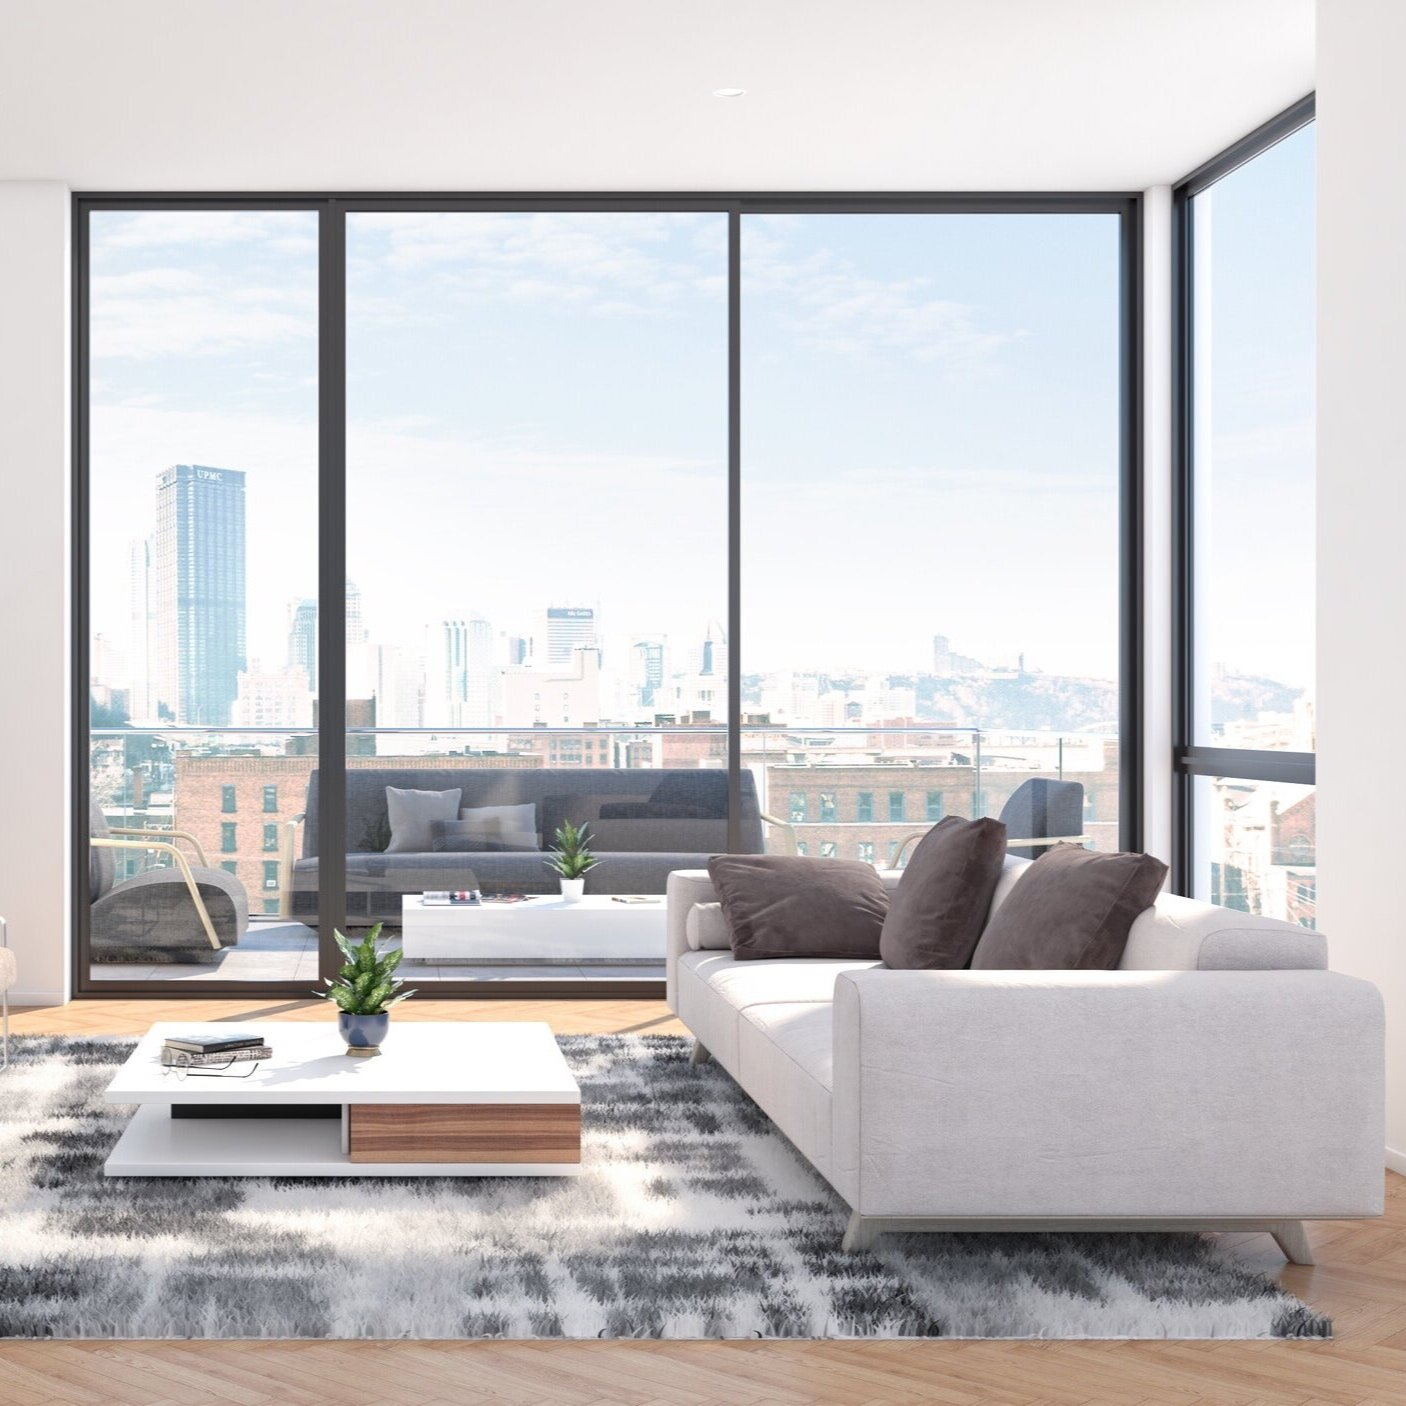 PENN 23Strip District - Sophisticated design meets superior craftsmanship in Pittsburgh's distinguished new addition to city living, located in one of the city's most iconic neighborhoods, the Strip District. Penn 23 offers amenities intended to make everyday living more inspired.